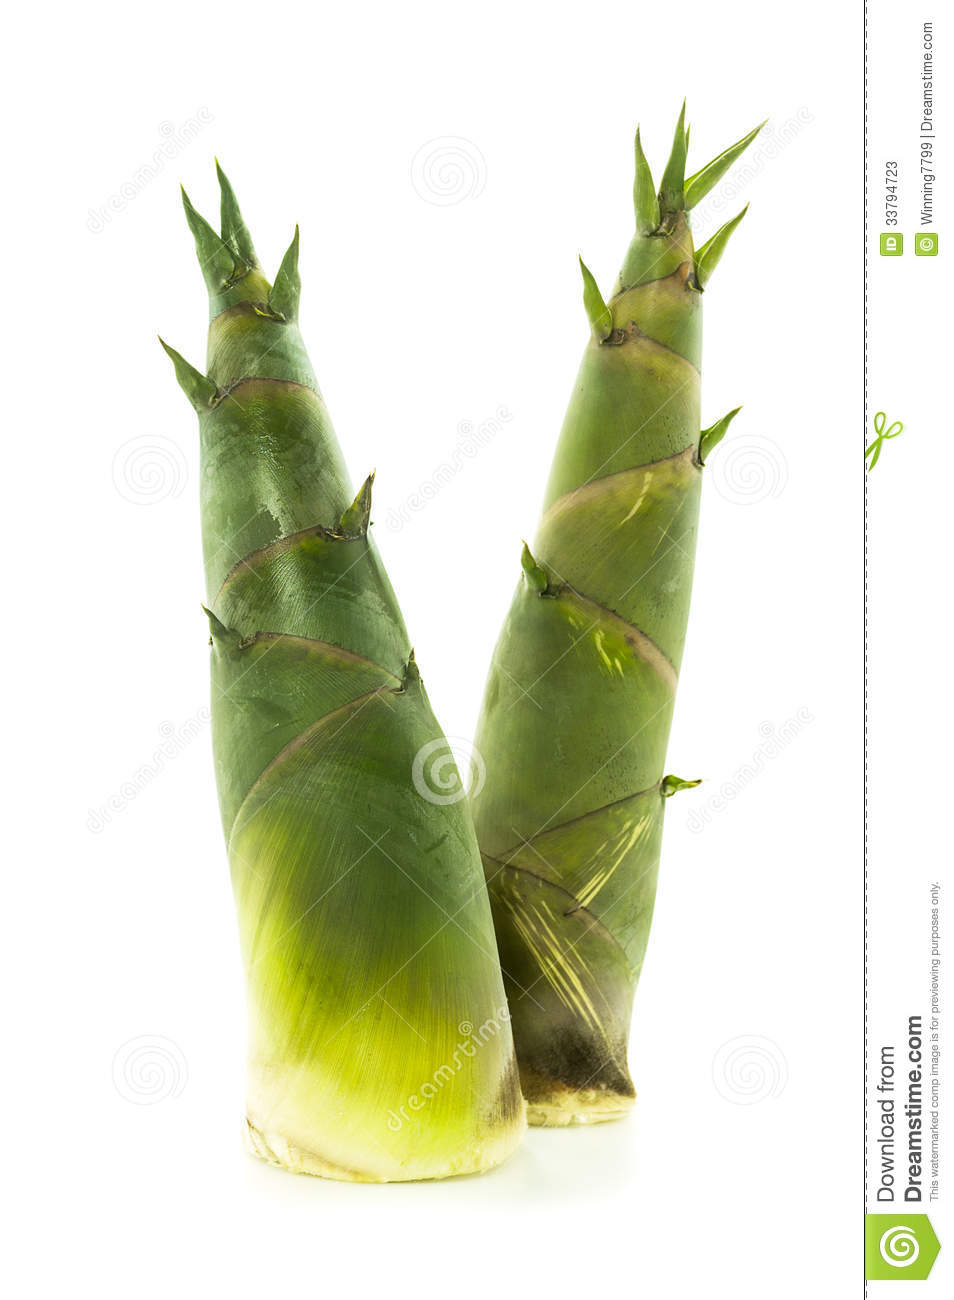 Bamboo Shoot Stock Photos - Image: 33794723